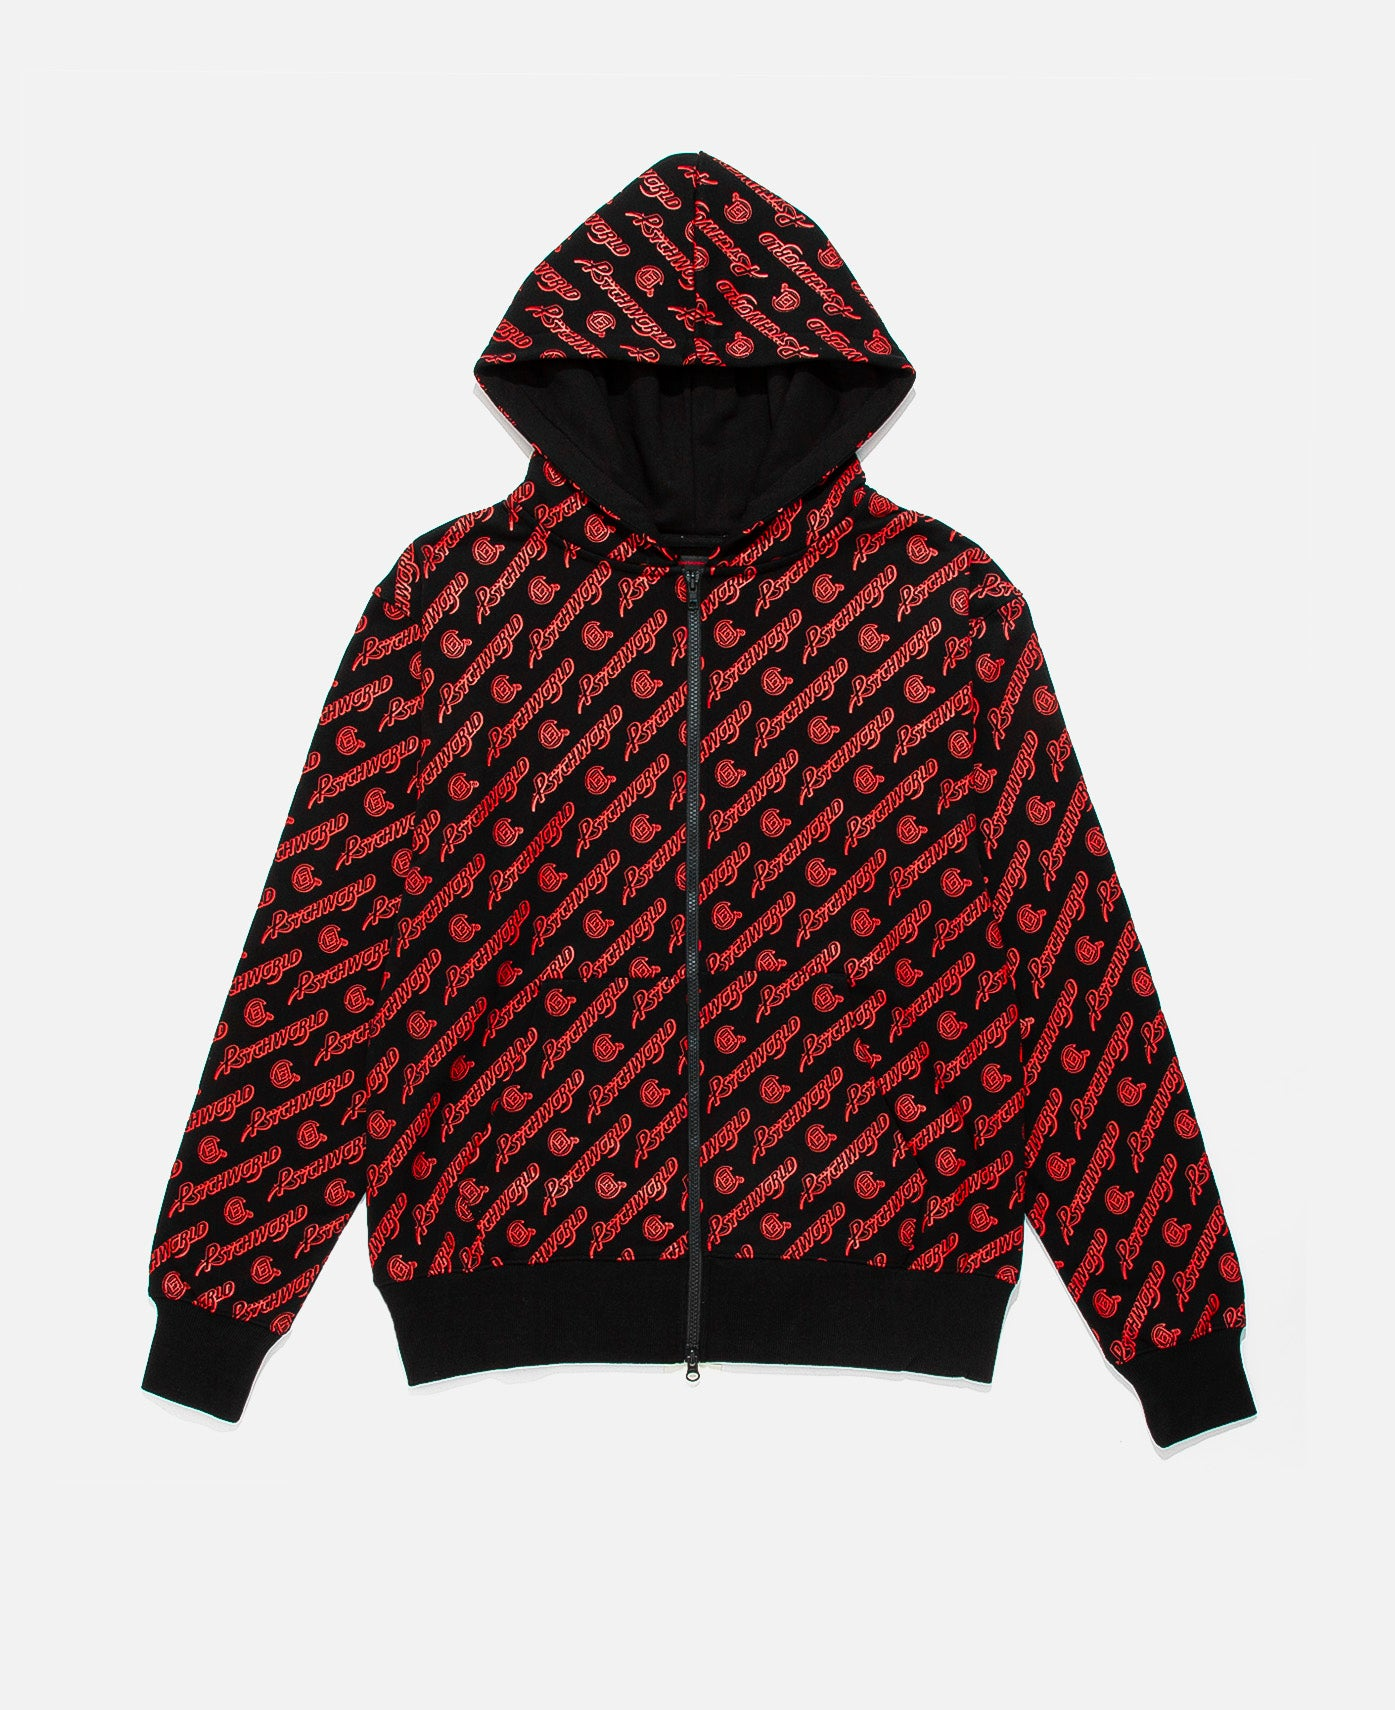 BLACK ZIP UP W/ RED ALL OVER PRINT